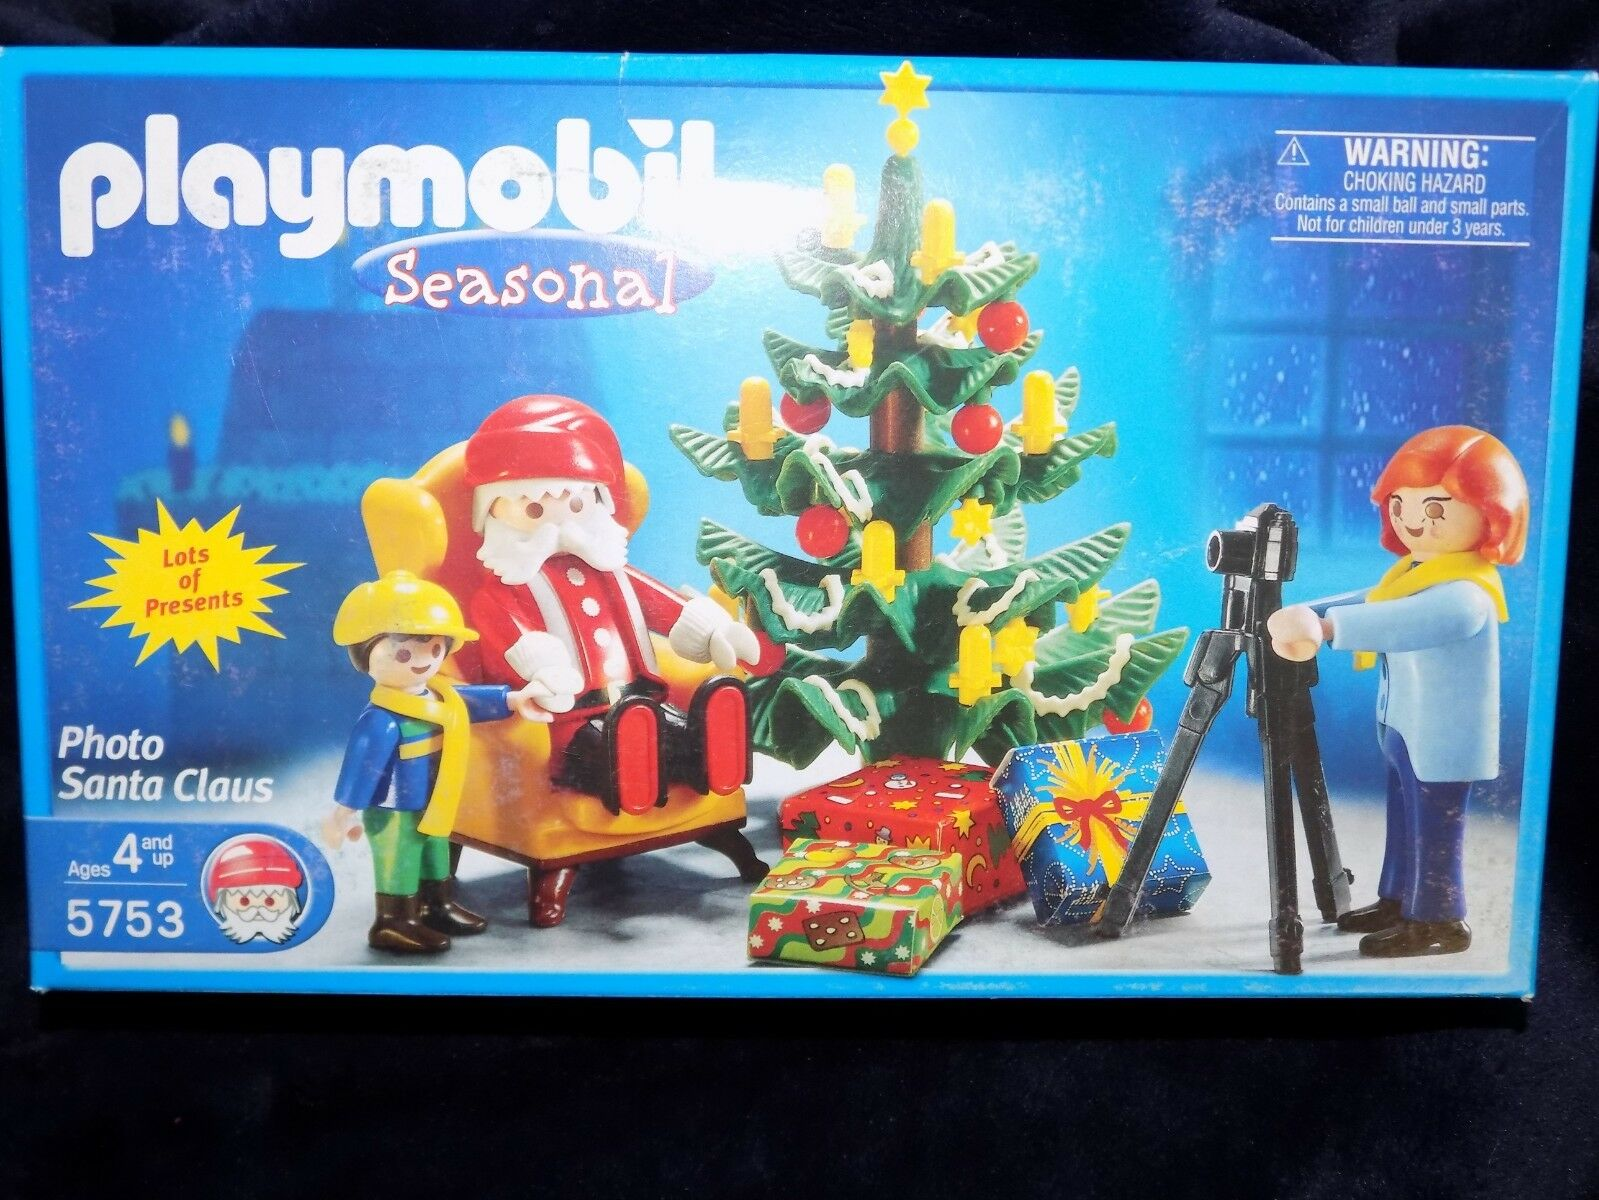 NEW Meerled 2003 PLAYMOBIL Christmas Picture Pheißo with Santa Claus Set 5753